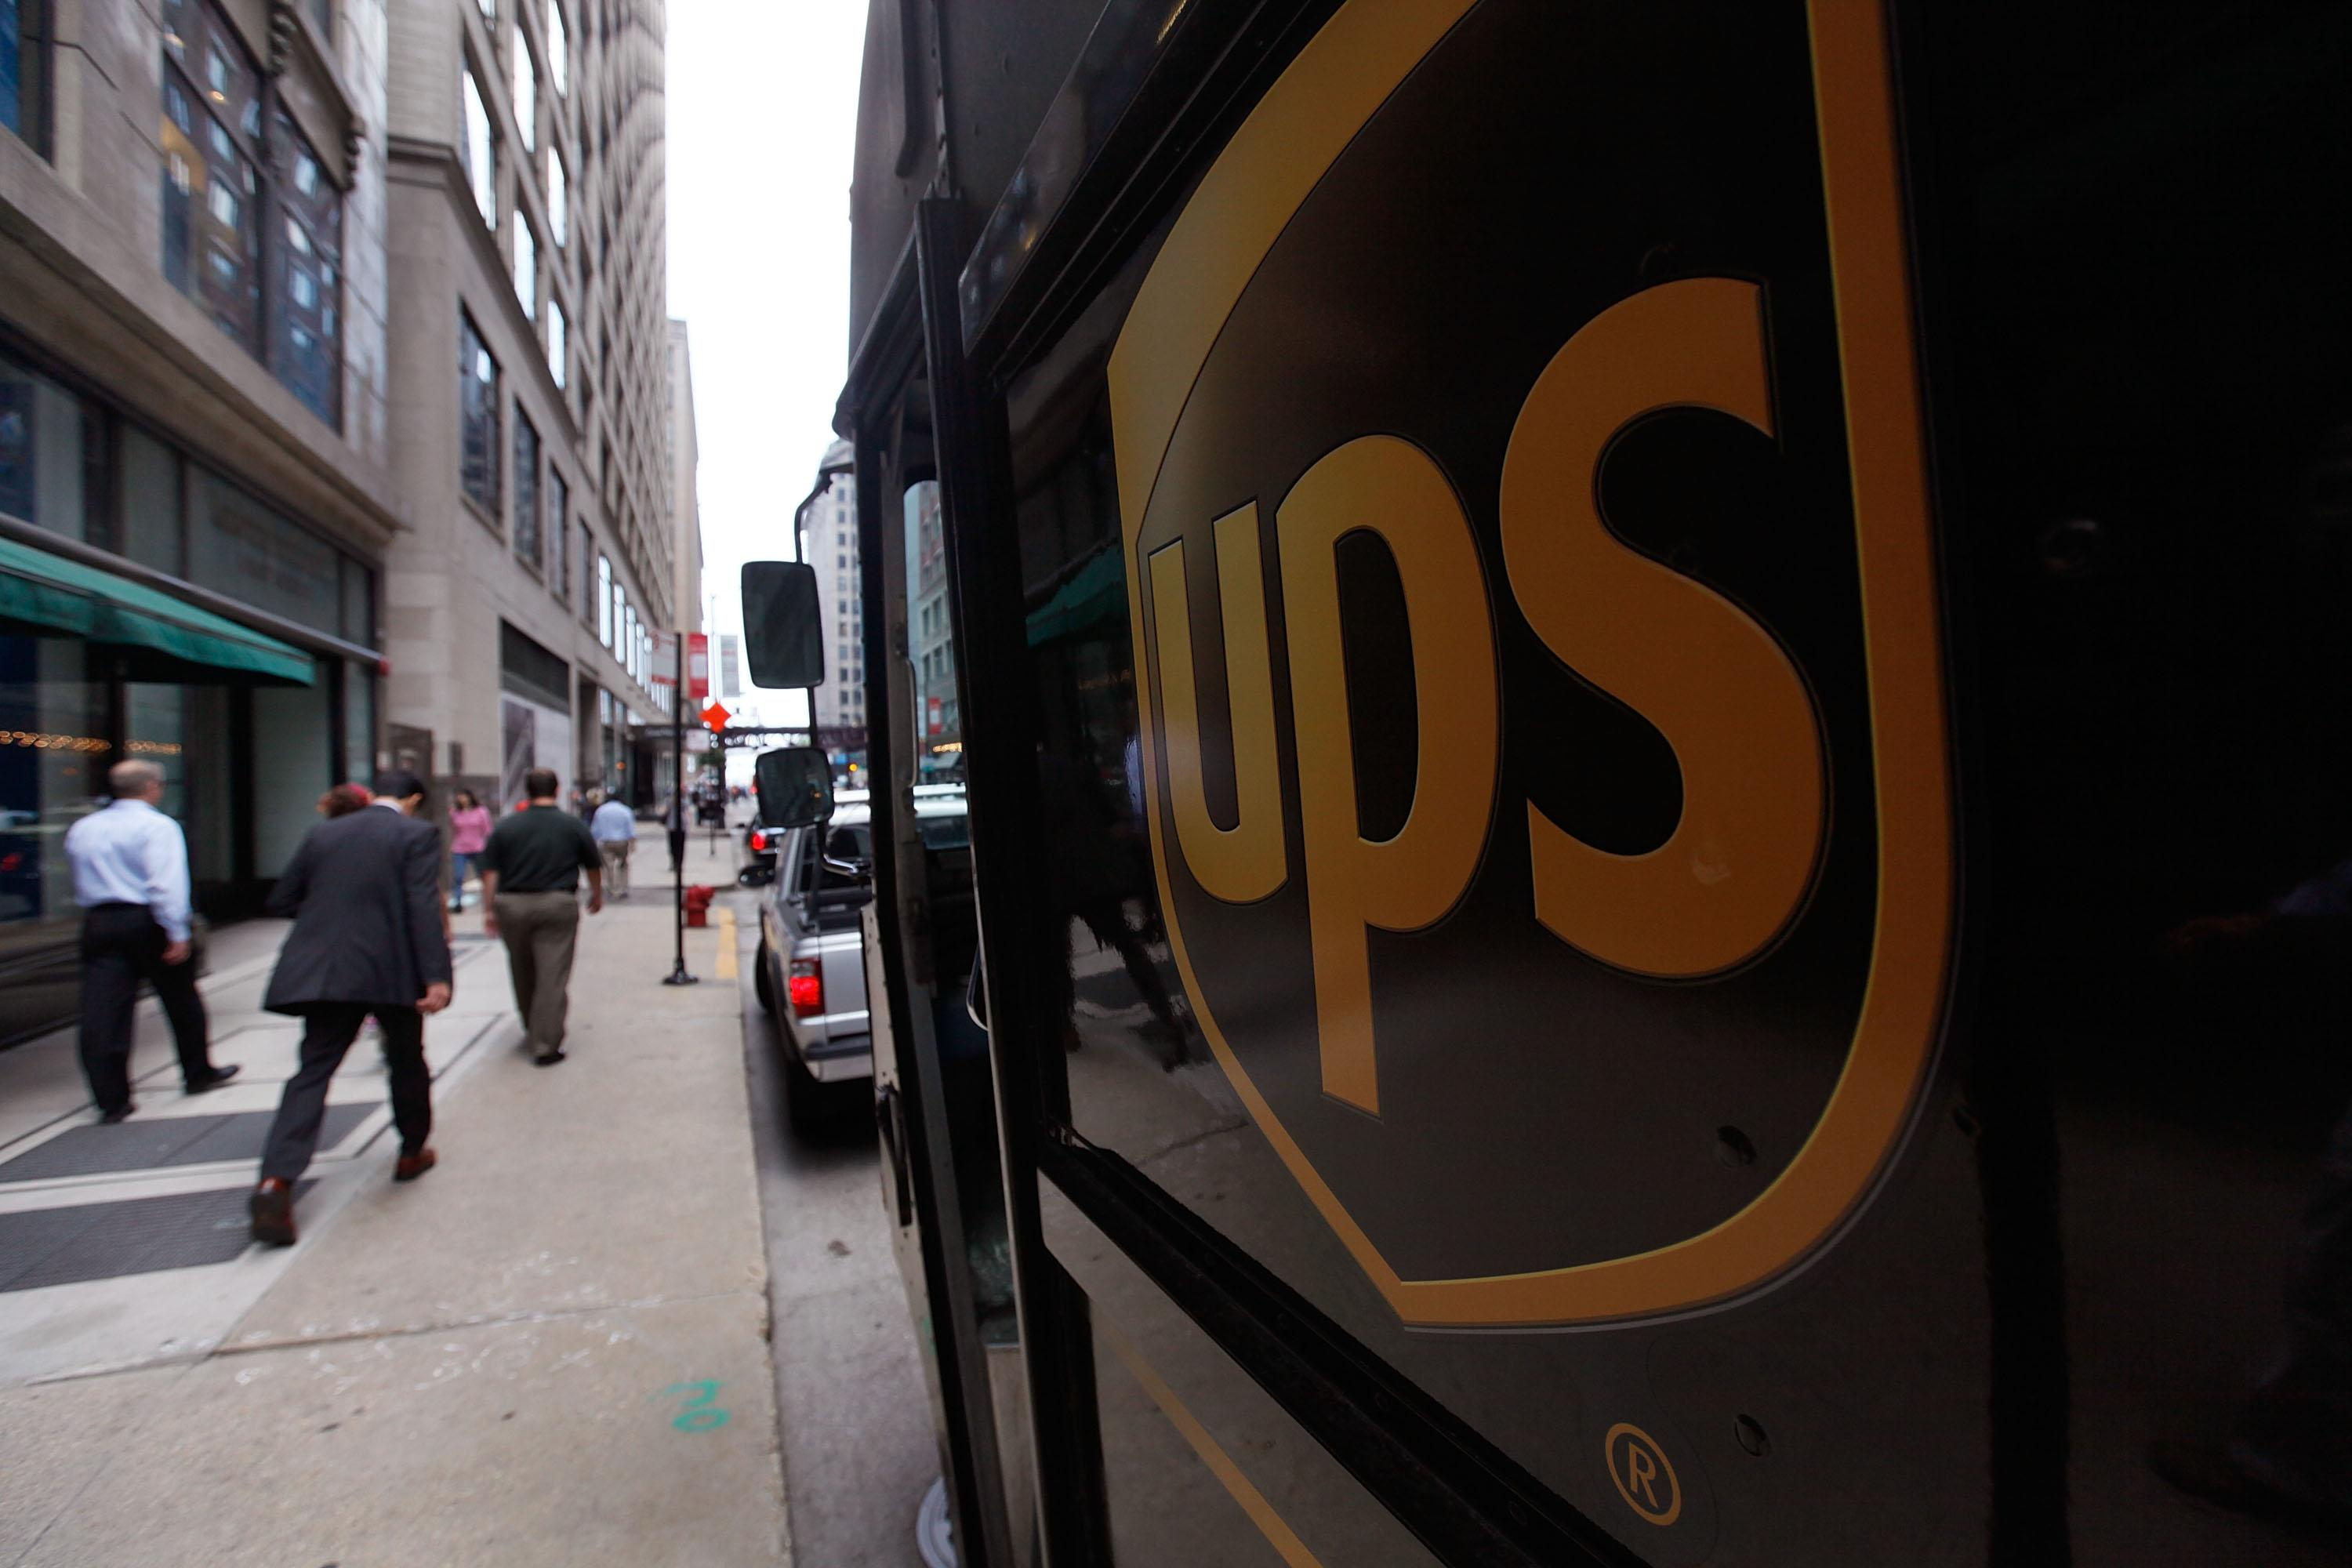 Fake UPS deliverymen shoot man after knocking on door